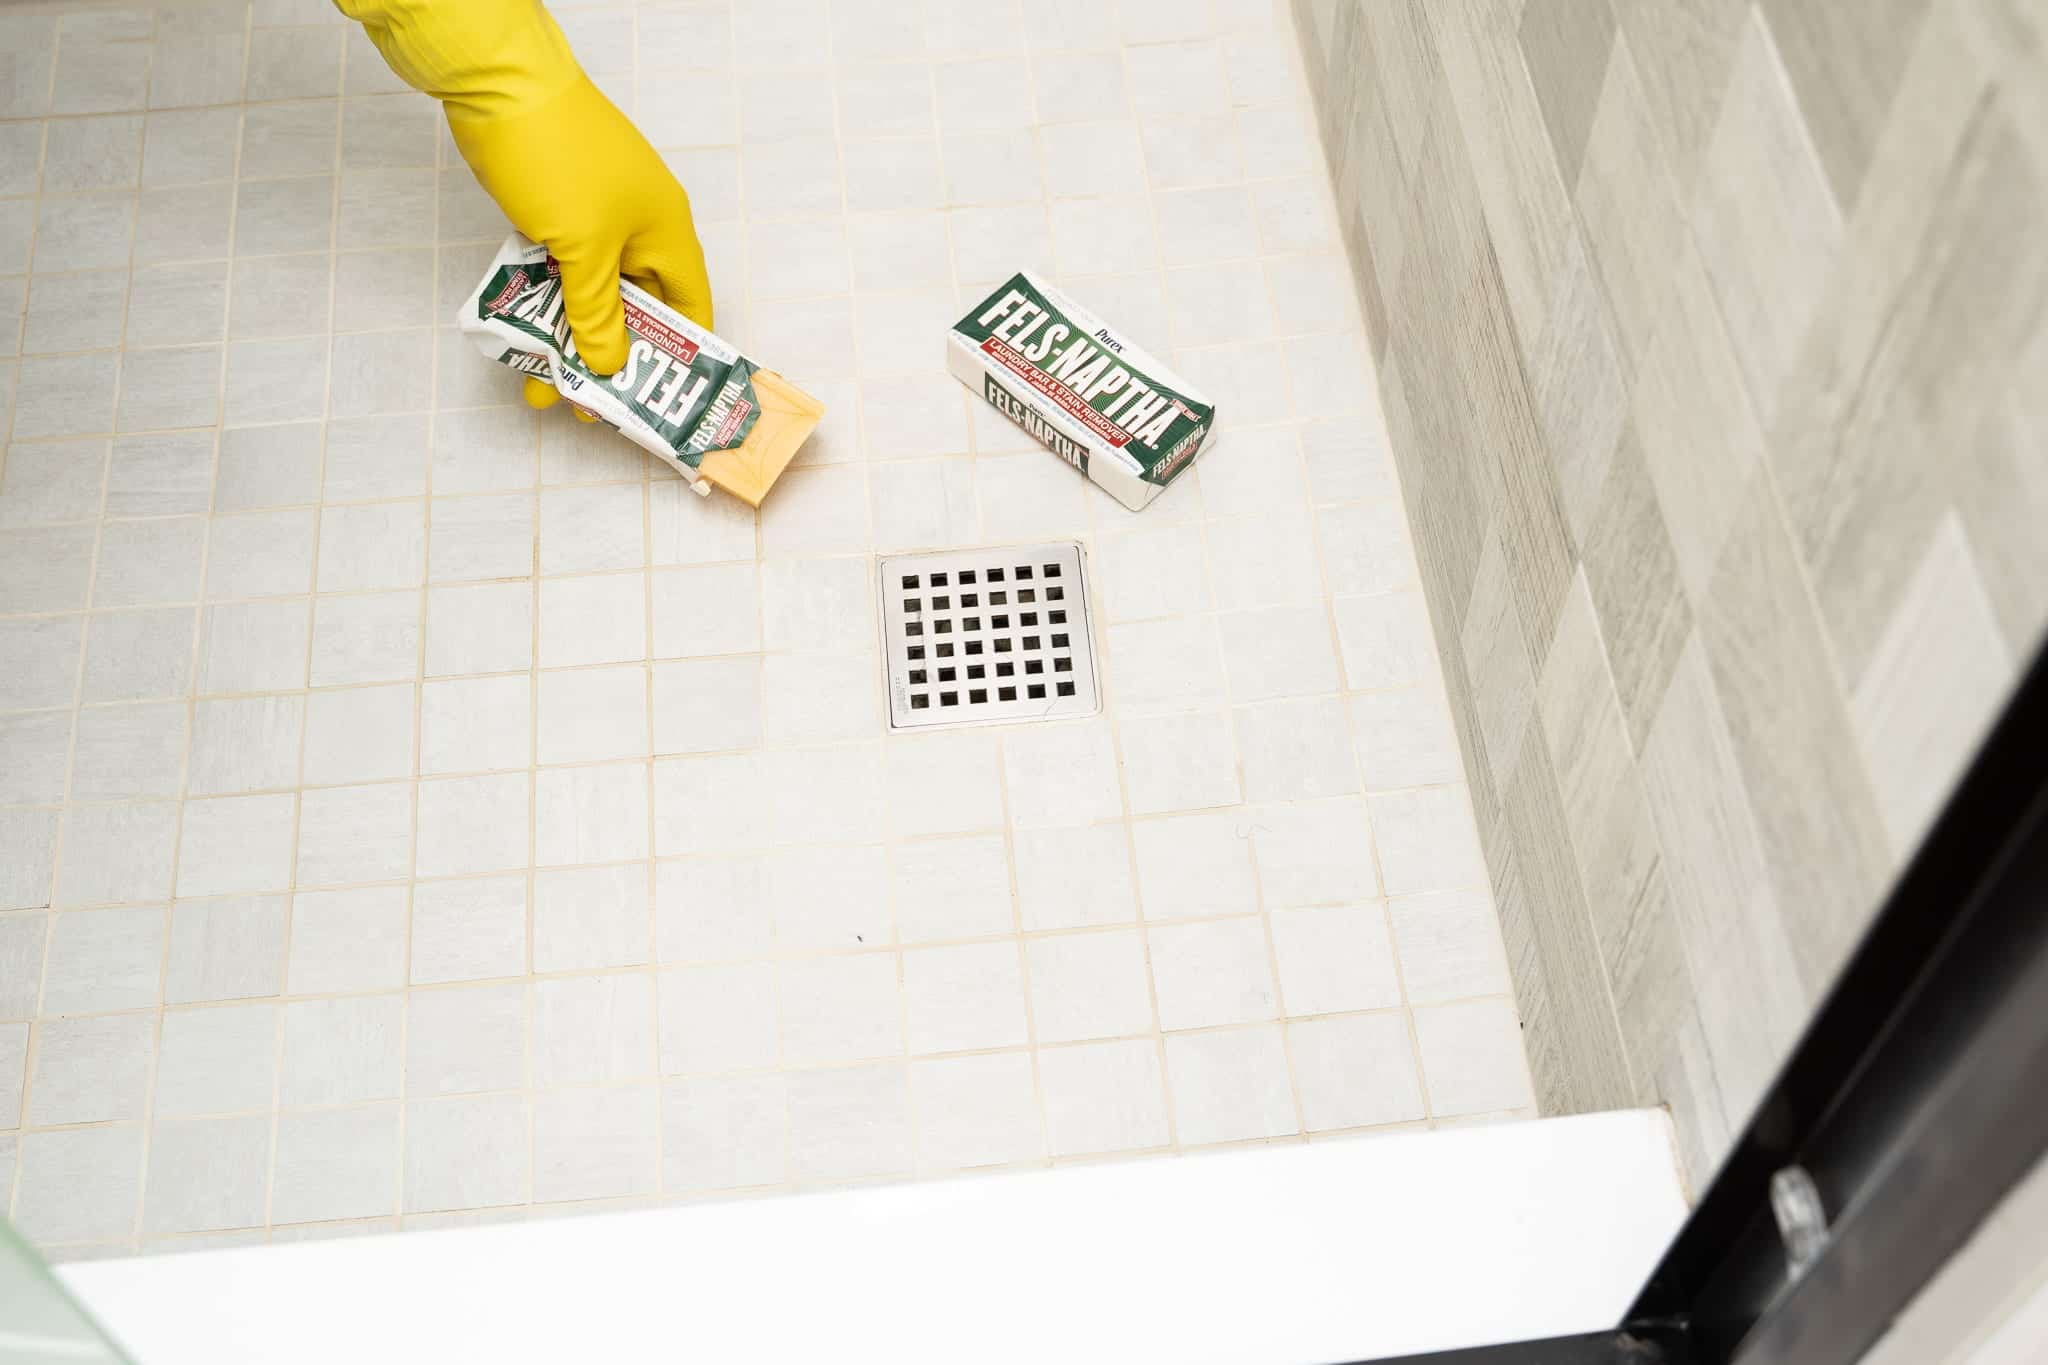 fels naptha soap cleaning grout joints